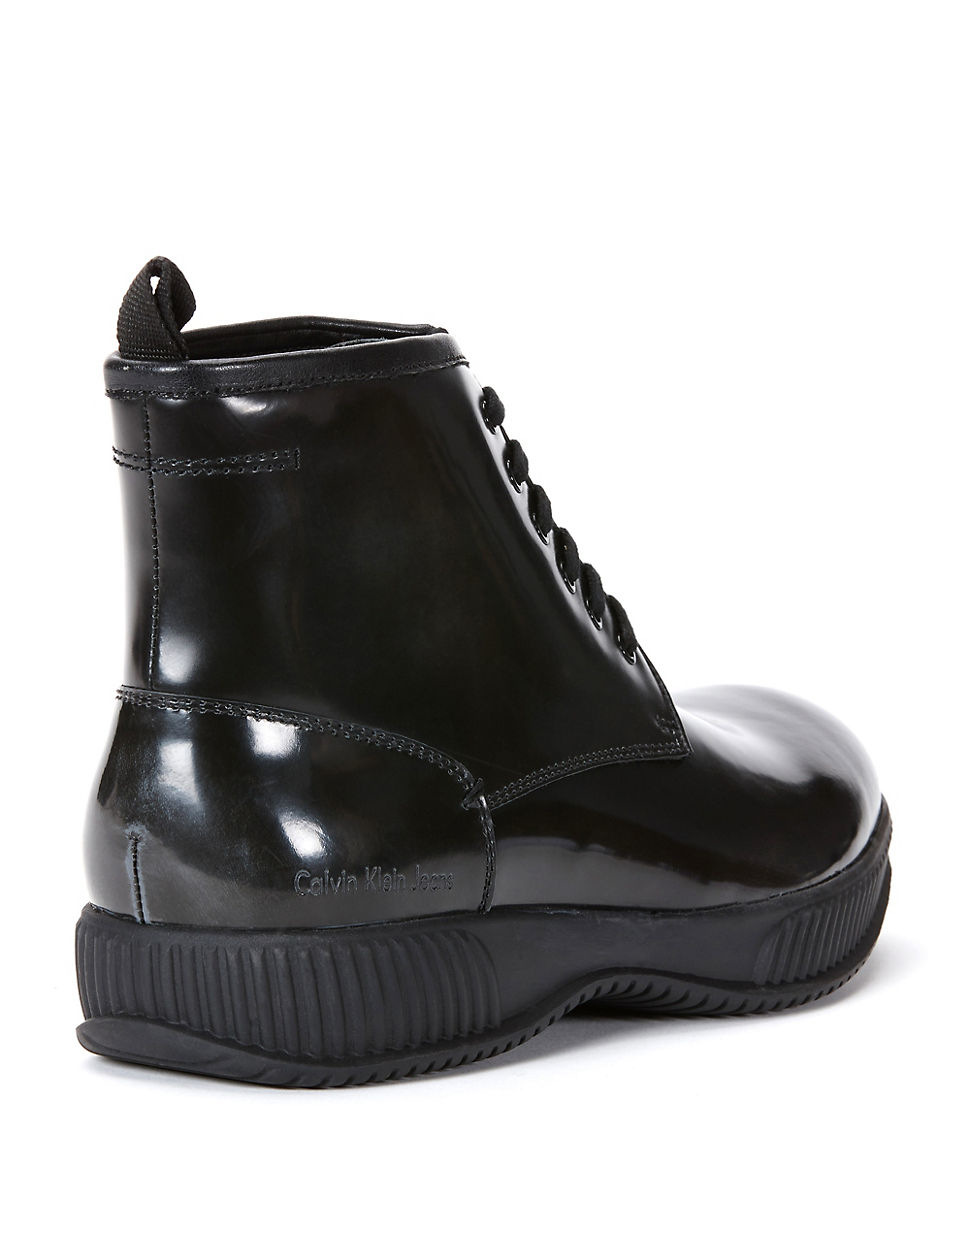 calvin klein hunt patent leather boots in black for lyst